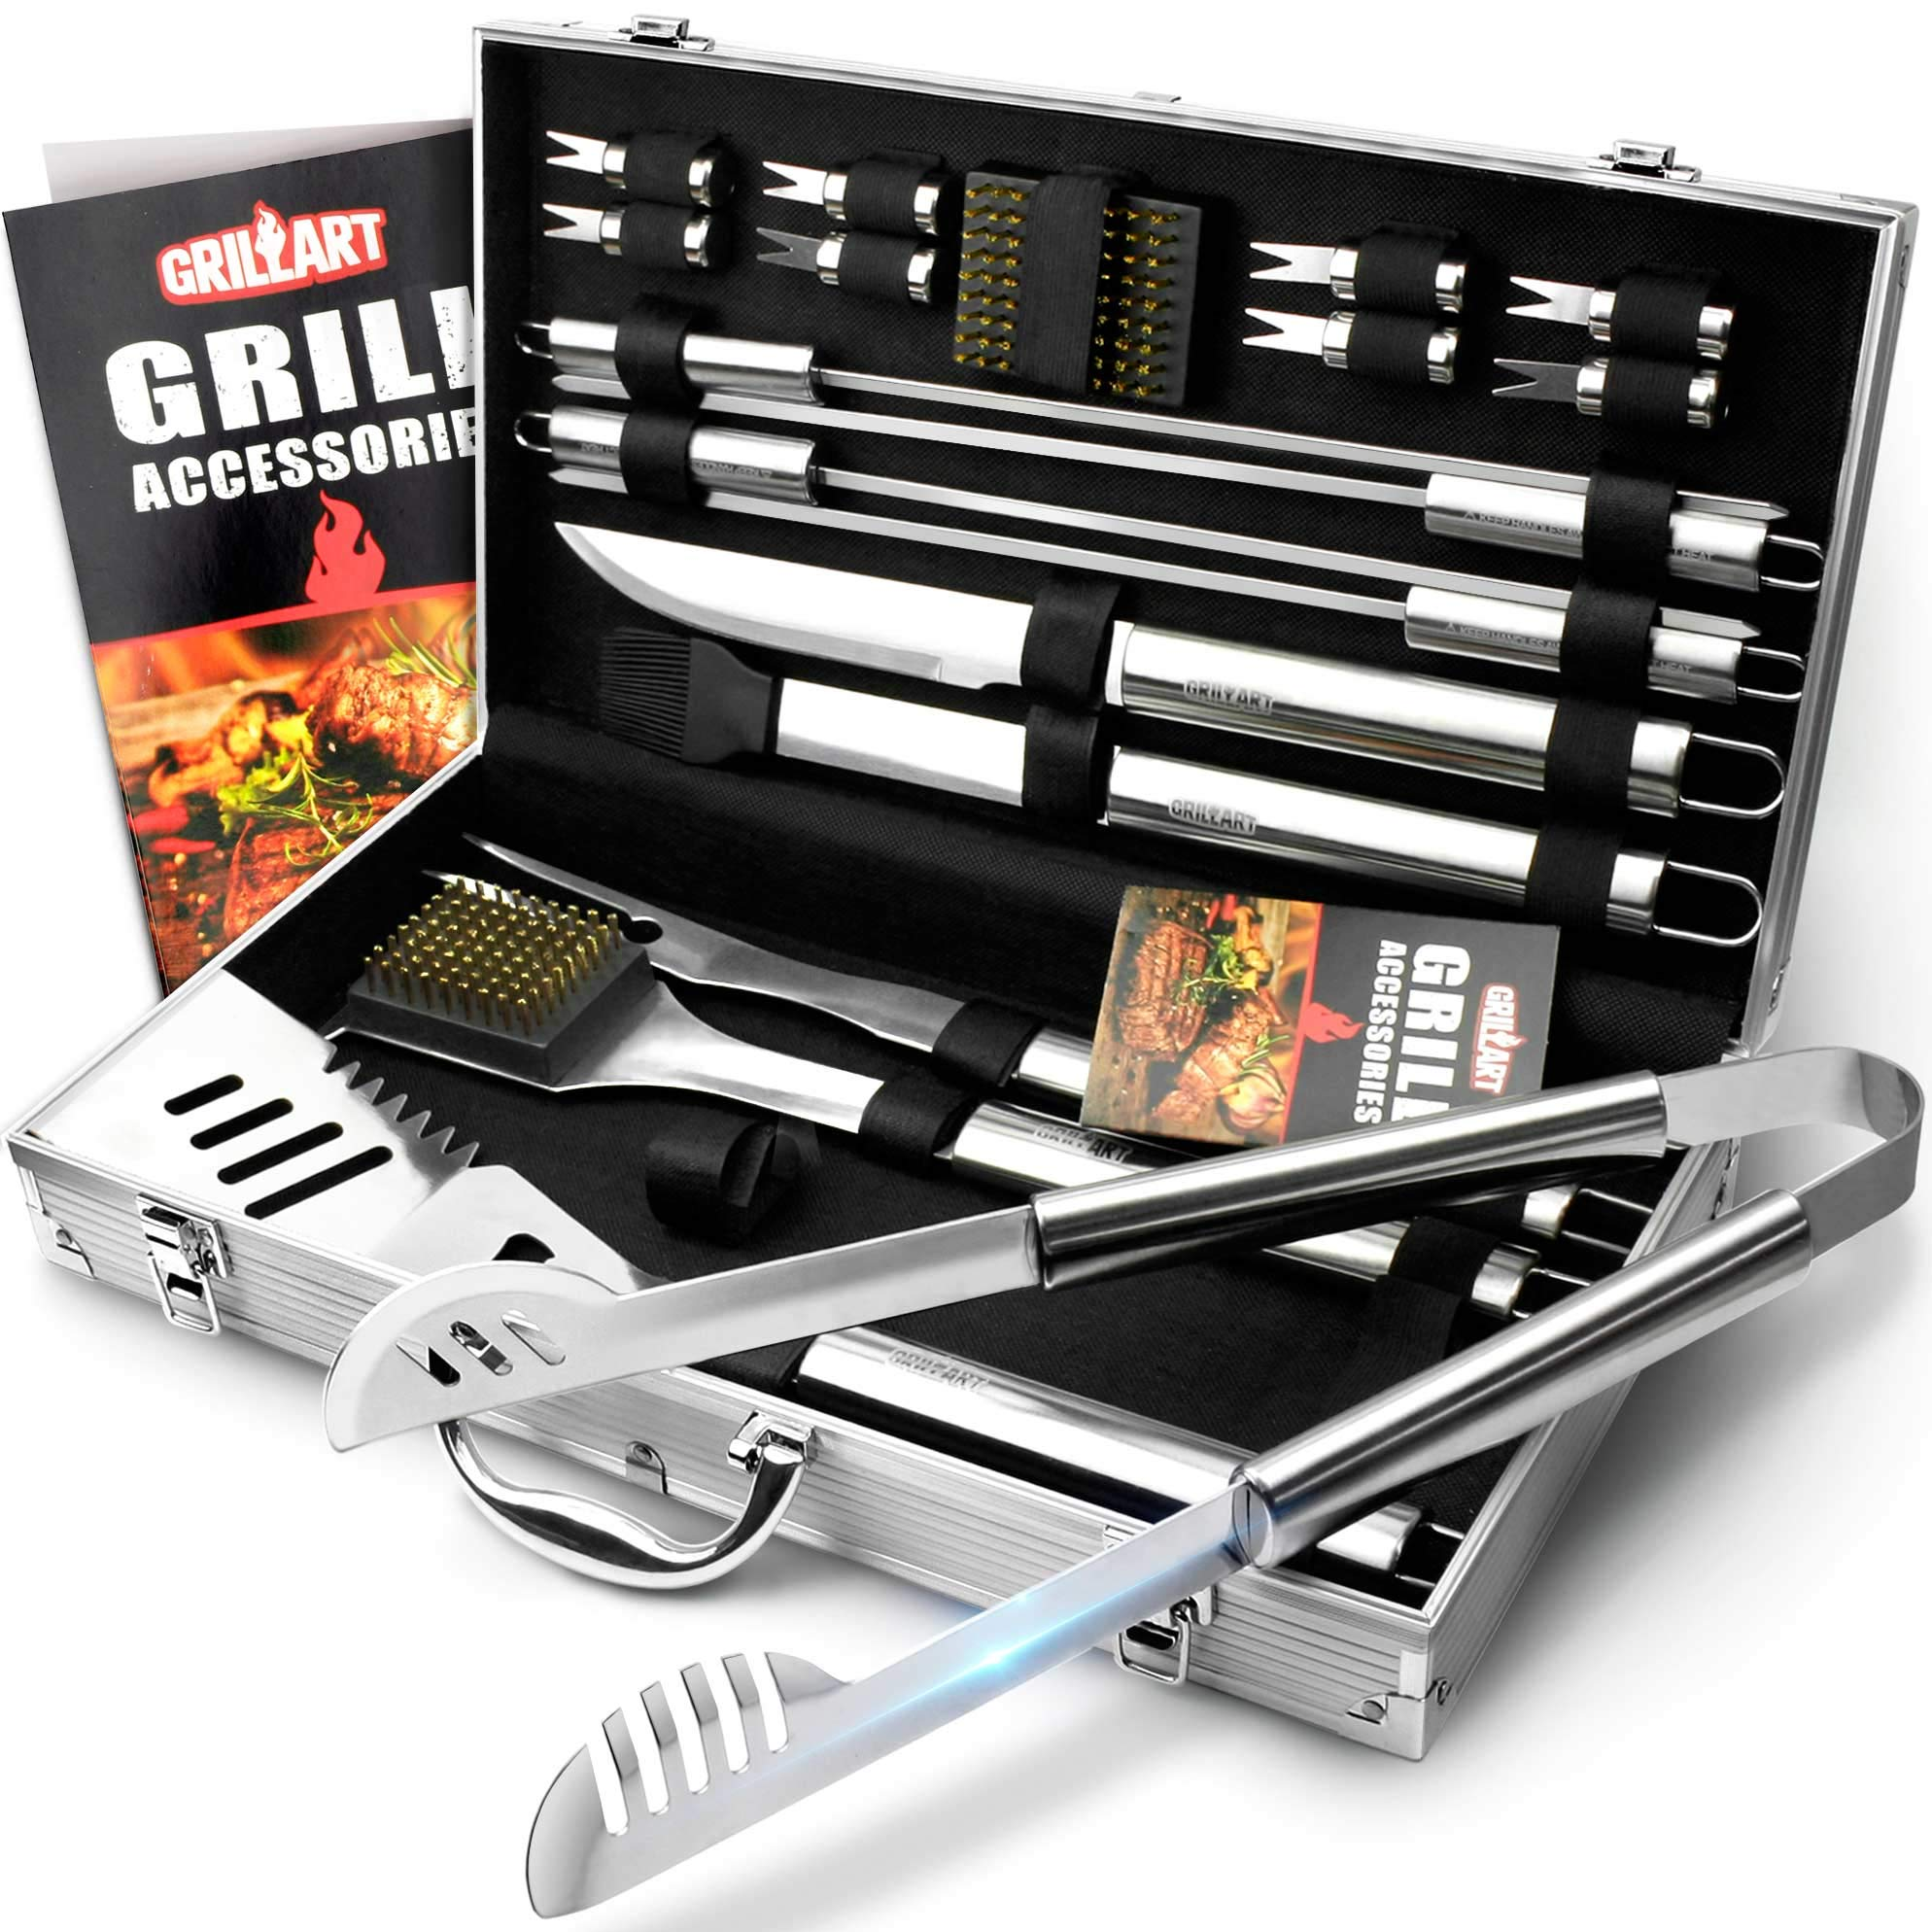 Weetiee BBQ Grill Utensil Tools Set. Reinforced Barbecue Tongs 19 Piece Stainless Steel BBQ Accessories Set - Complete Outdoor Grilling Tools Kit with Aluminum Storage Case - Ideal Gift for Man/Dad by Weetiee